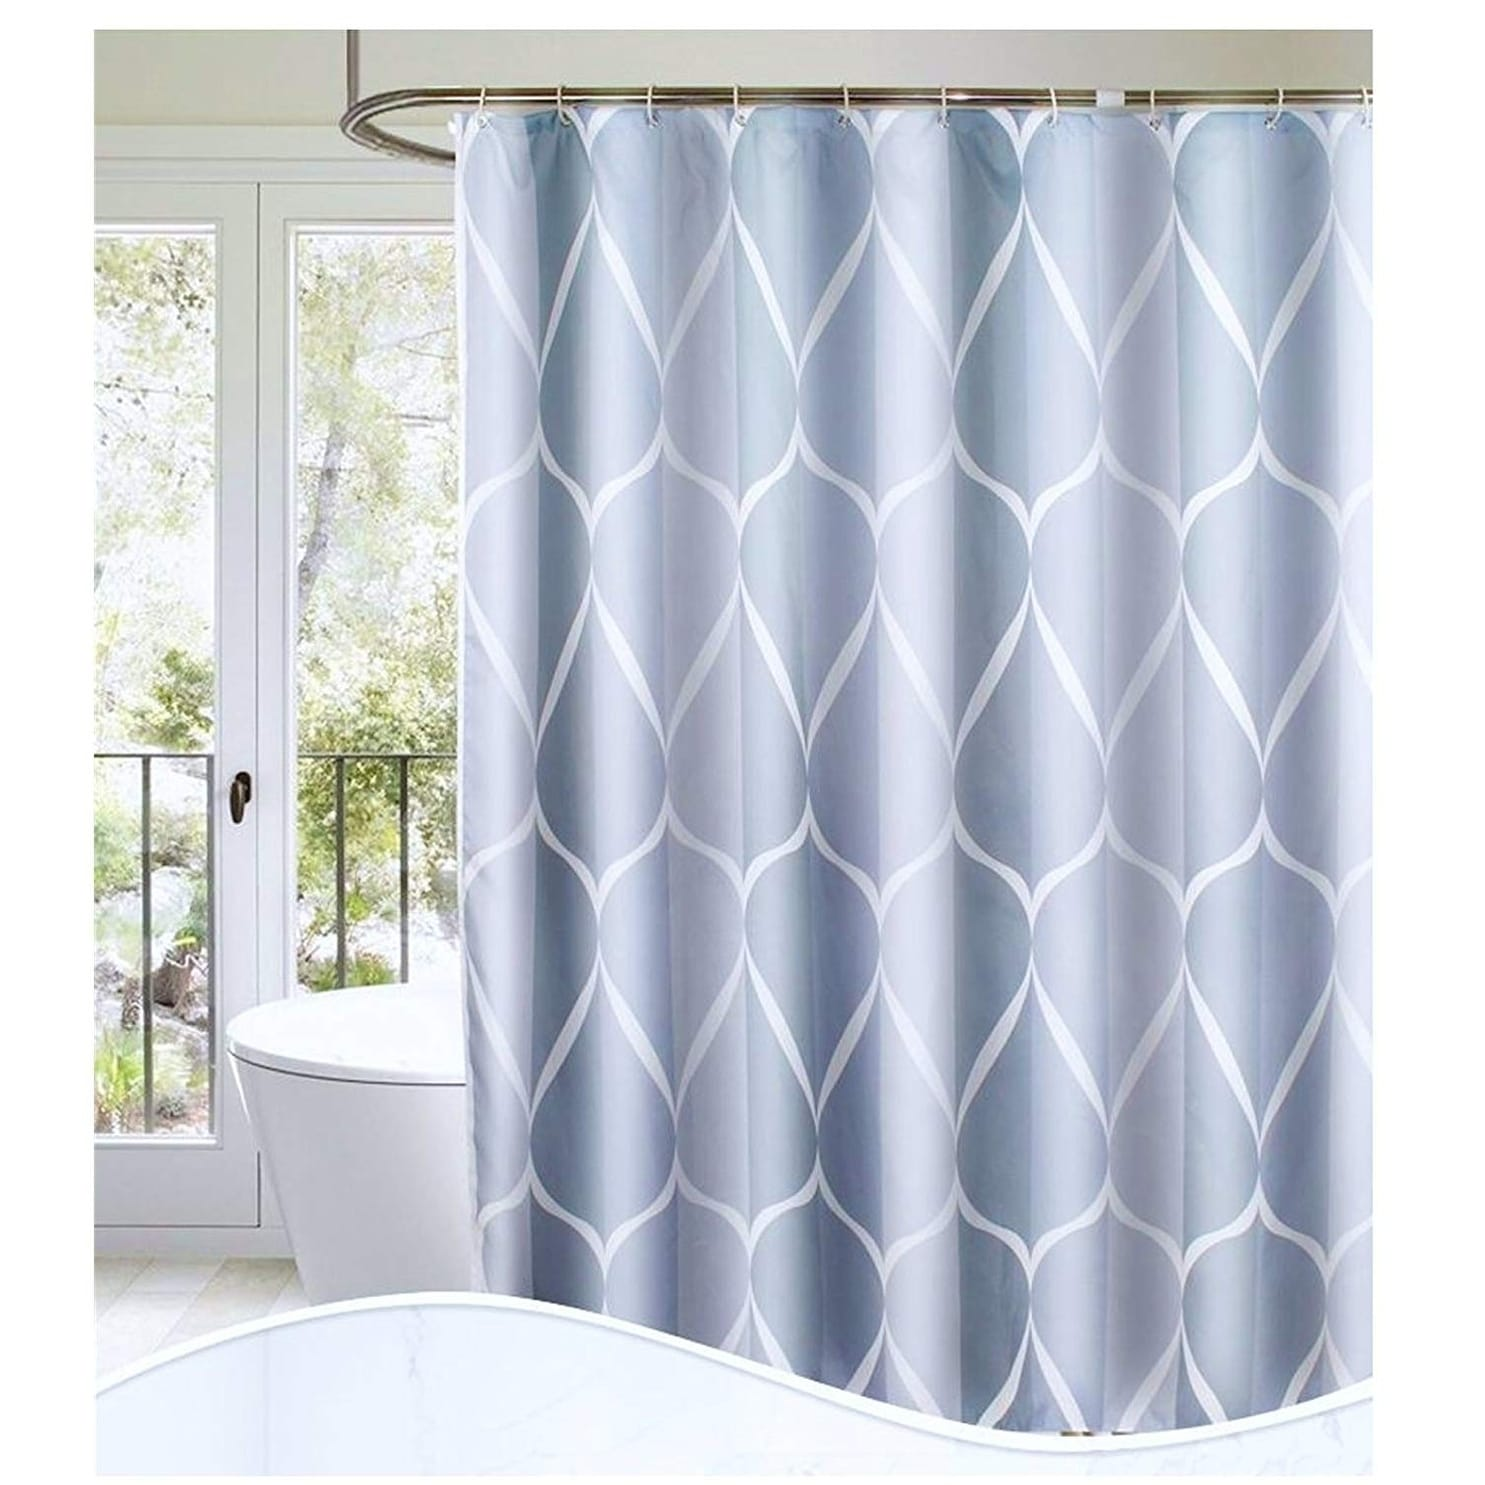 Pin By Meredith Hanley On Patterned Shower Curtain In 2020 Luxury Shower Luxury Shower Curtain Gray Shower Curtains